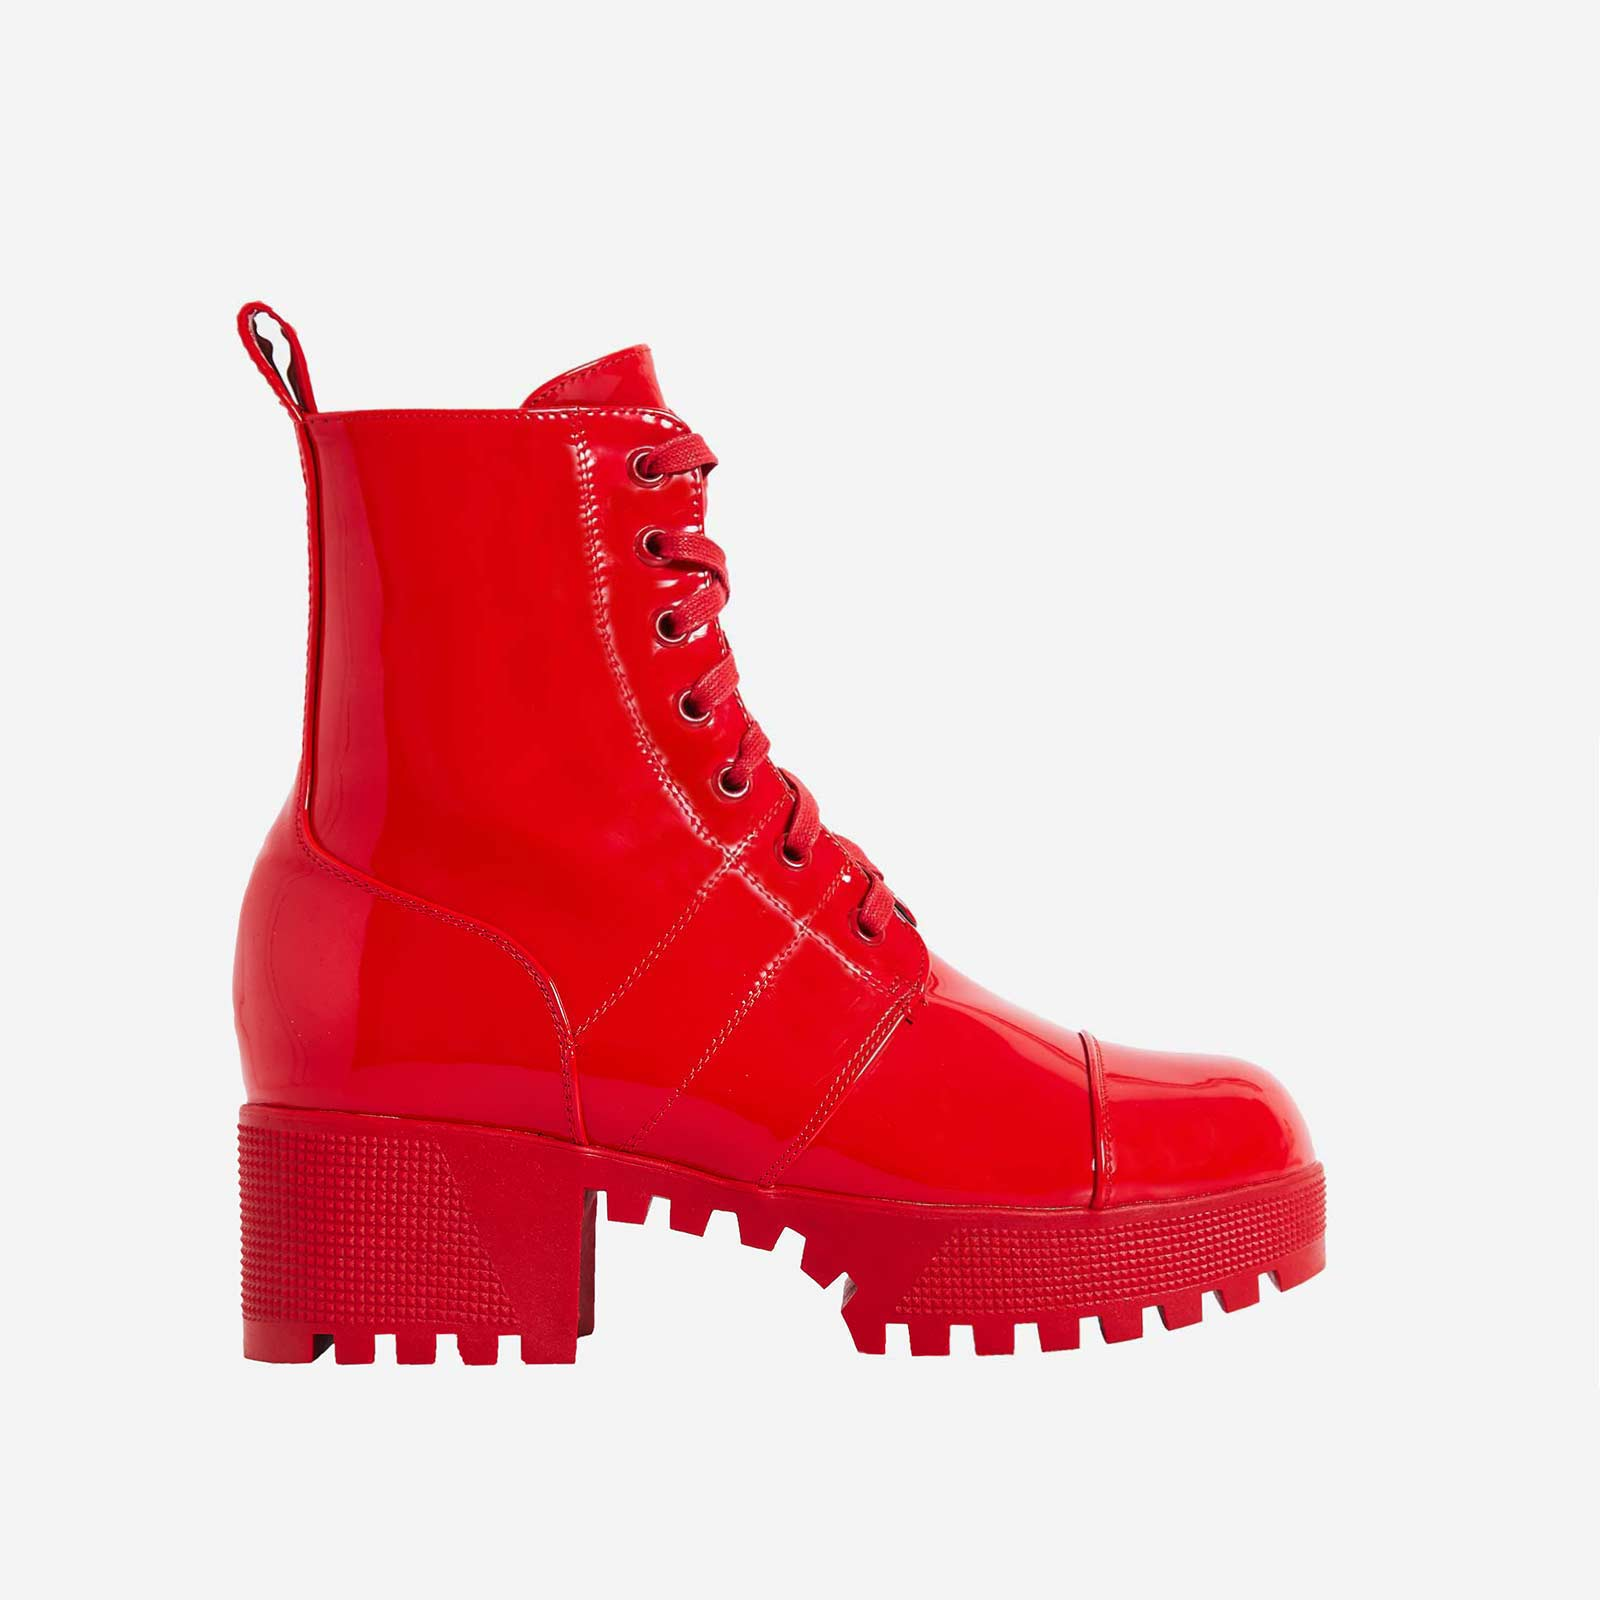 Cooper Chunky Sole Lace Up Boot In Ankle Biker Boot In Red Patent